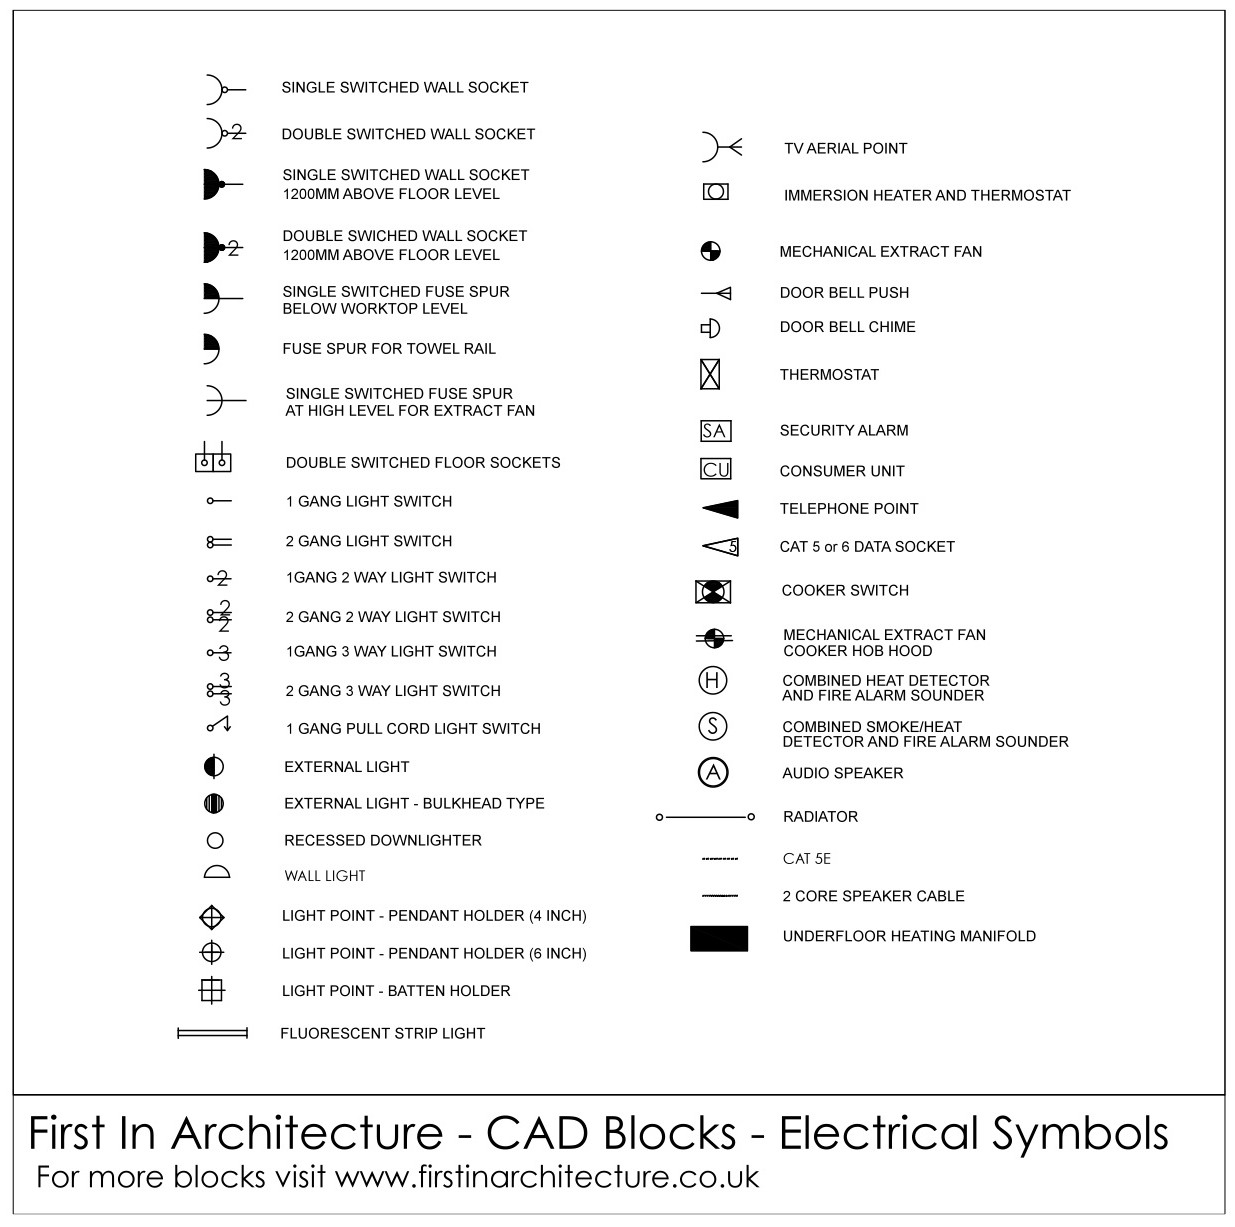 House wiring symbols uk online schematic diagram free cad blocks electrical symbols rh firstinarchitecture co uk home wiring symbols chart house electrical wiring asfbconference2016 Choice Image